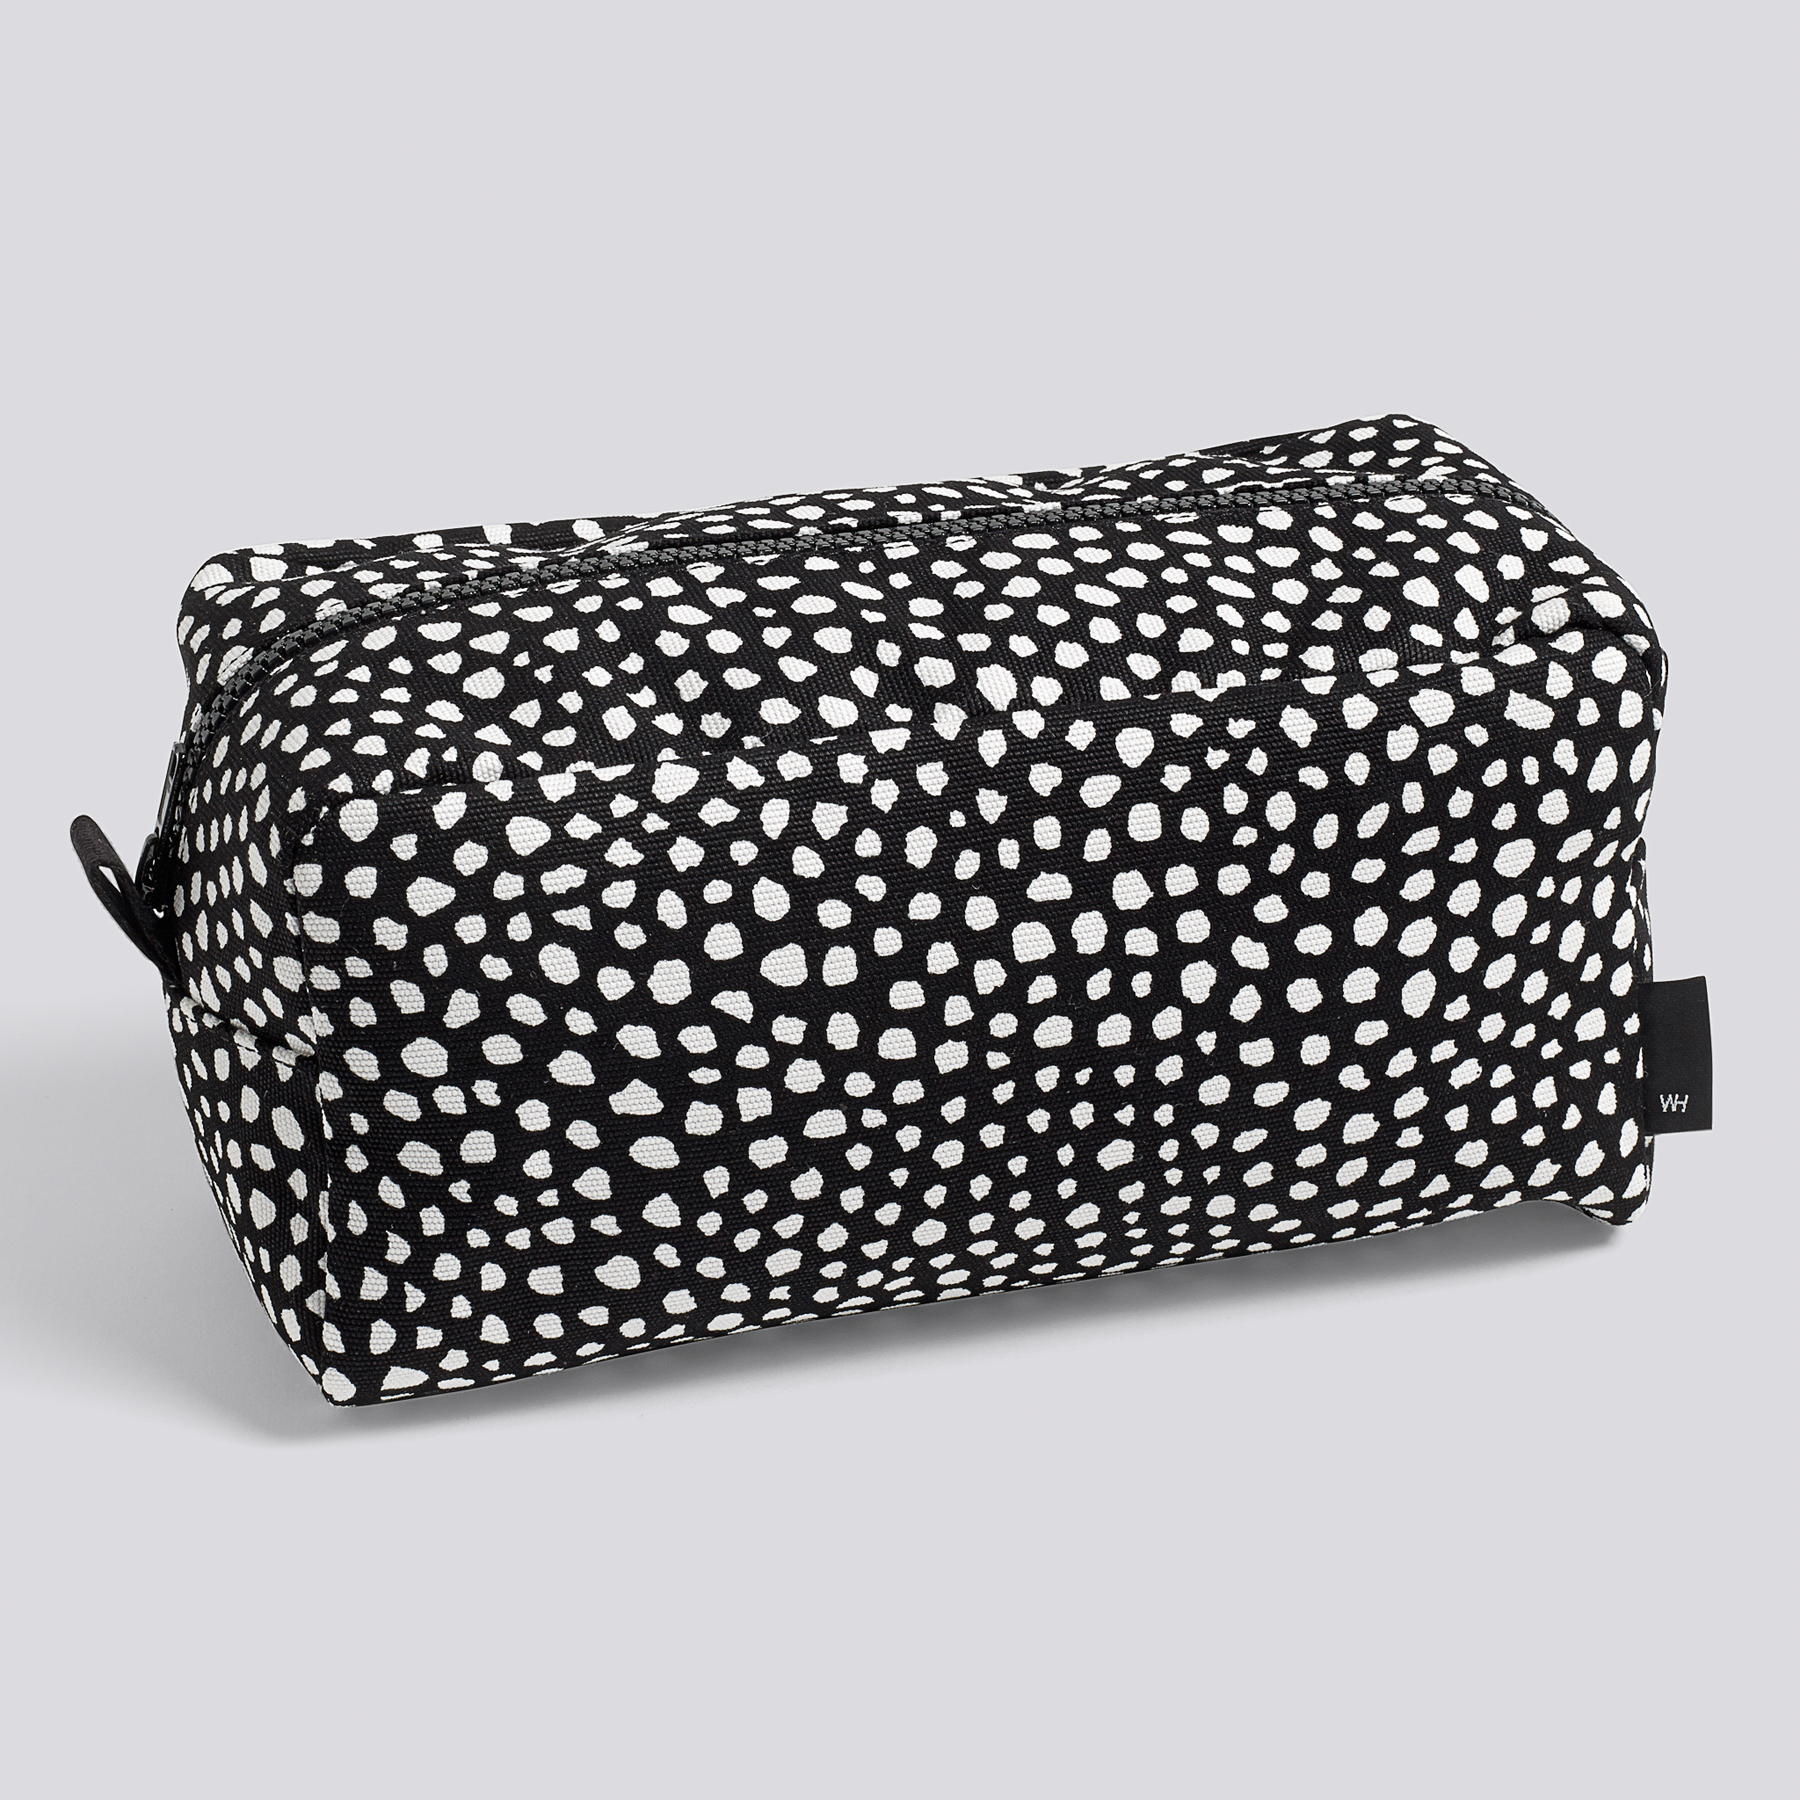 WH-Dot-Wash-Bag-L-black